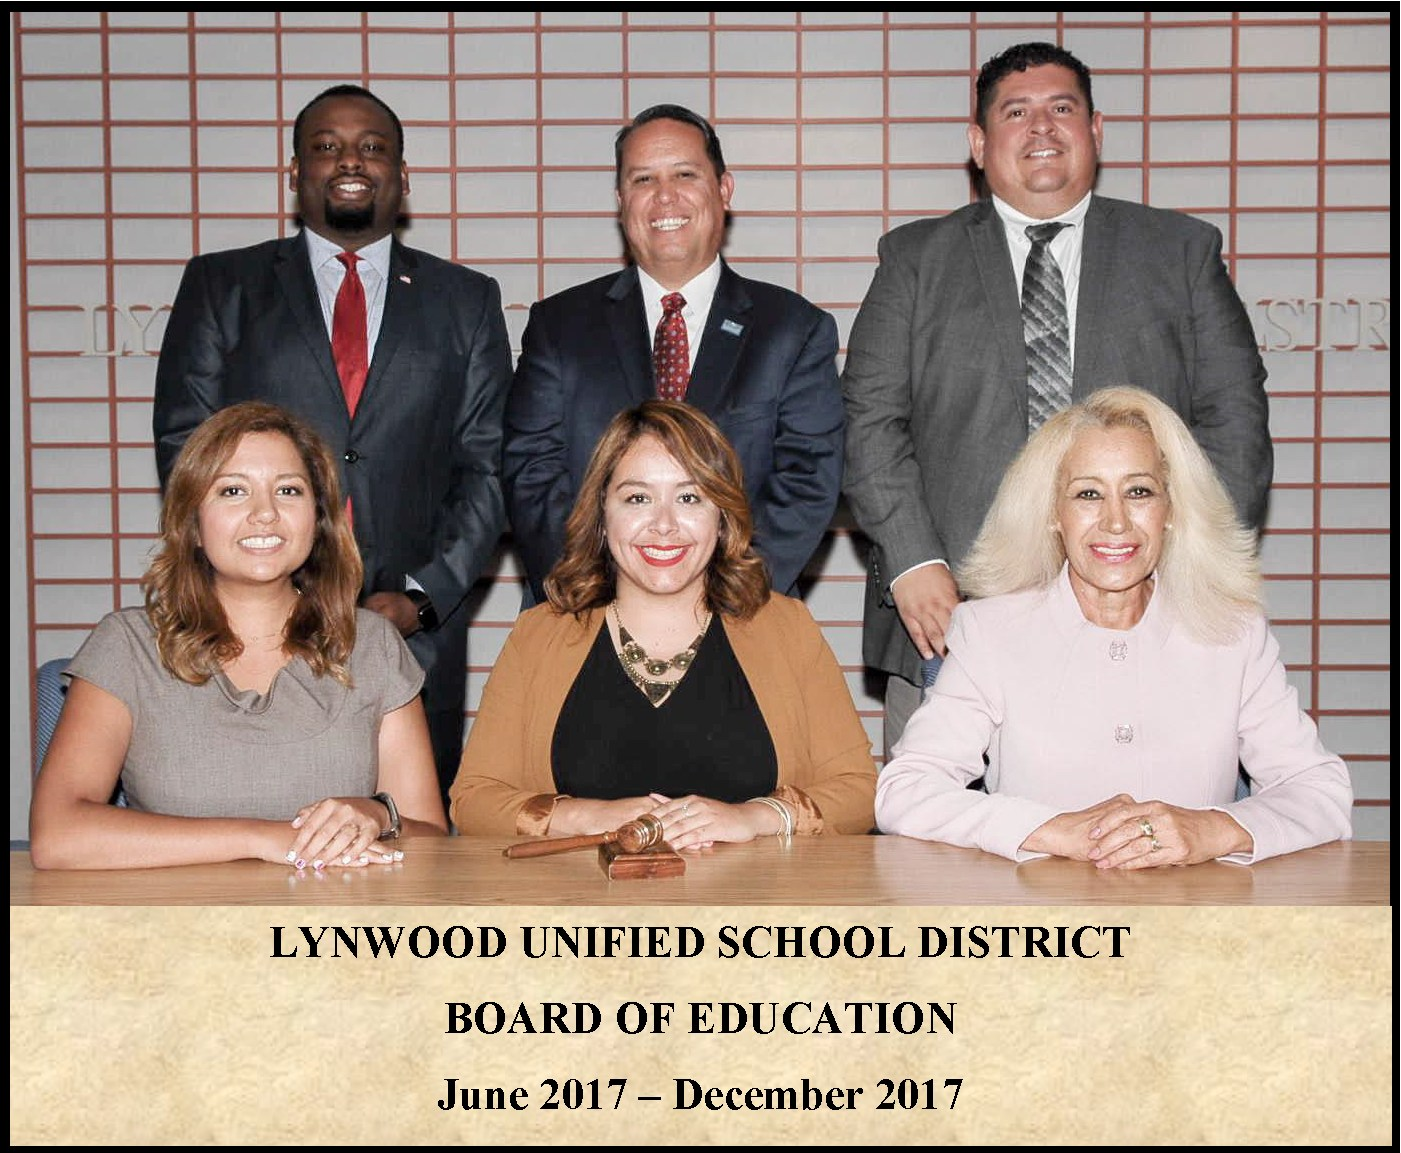 Picture of Members of the Lynwood Unified School District Board of Education